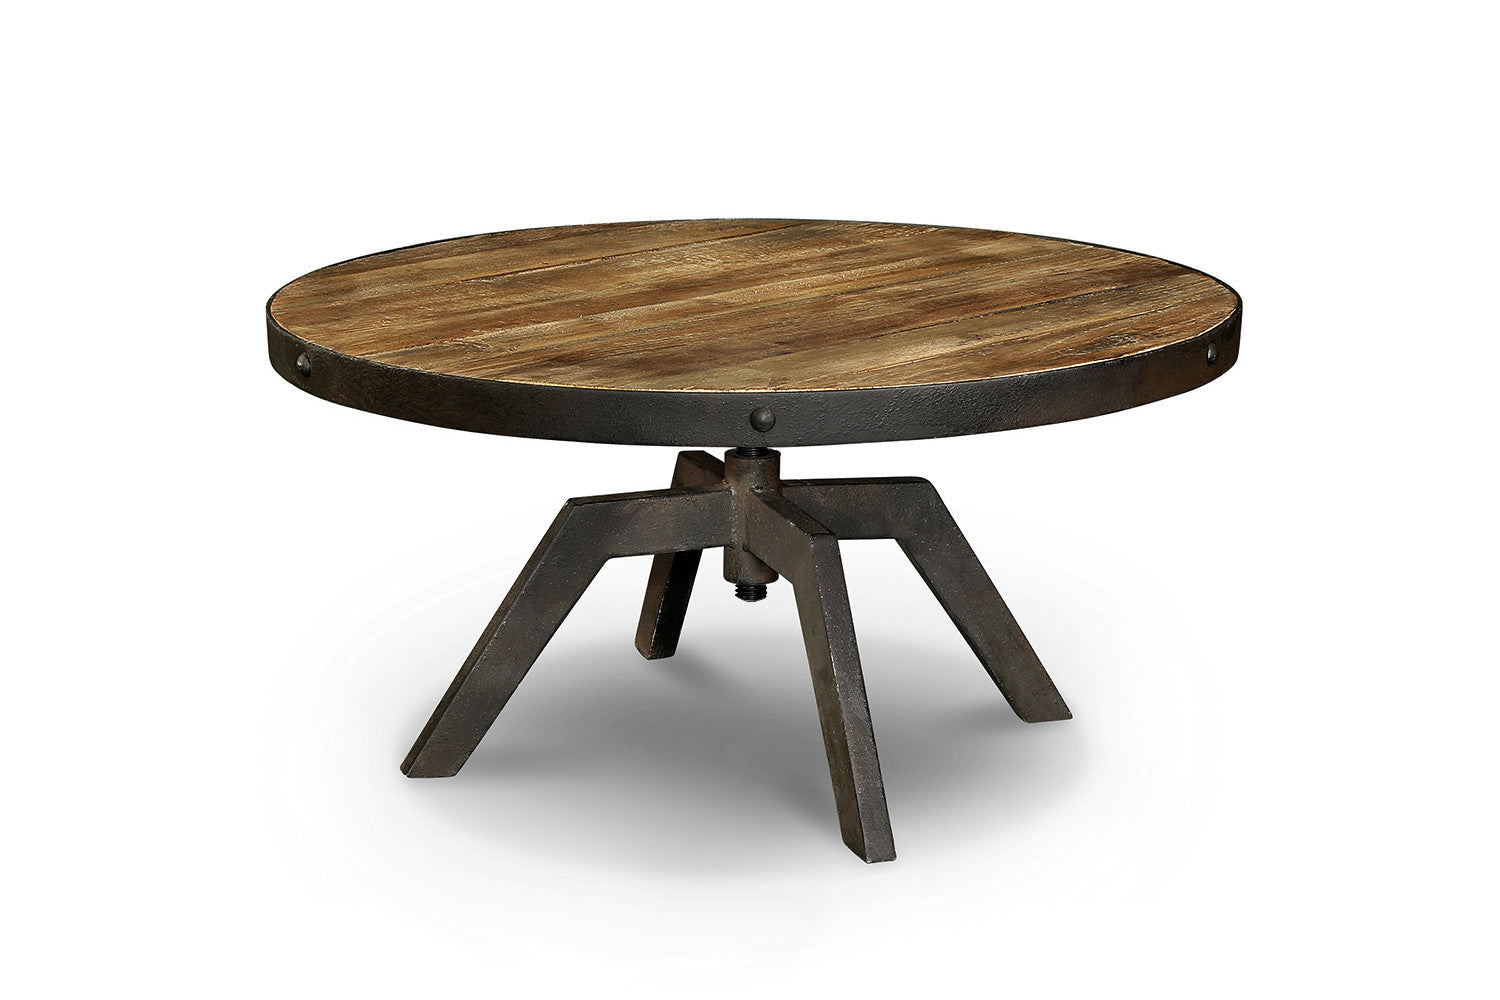 Table basse industrielle en bois et m tal tb03 rose - Table basse industrielle bois metal ...